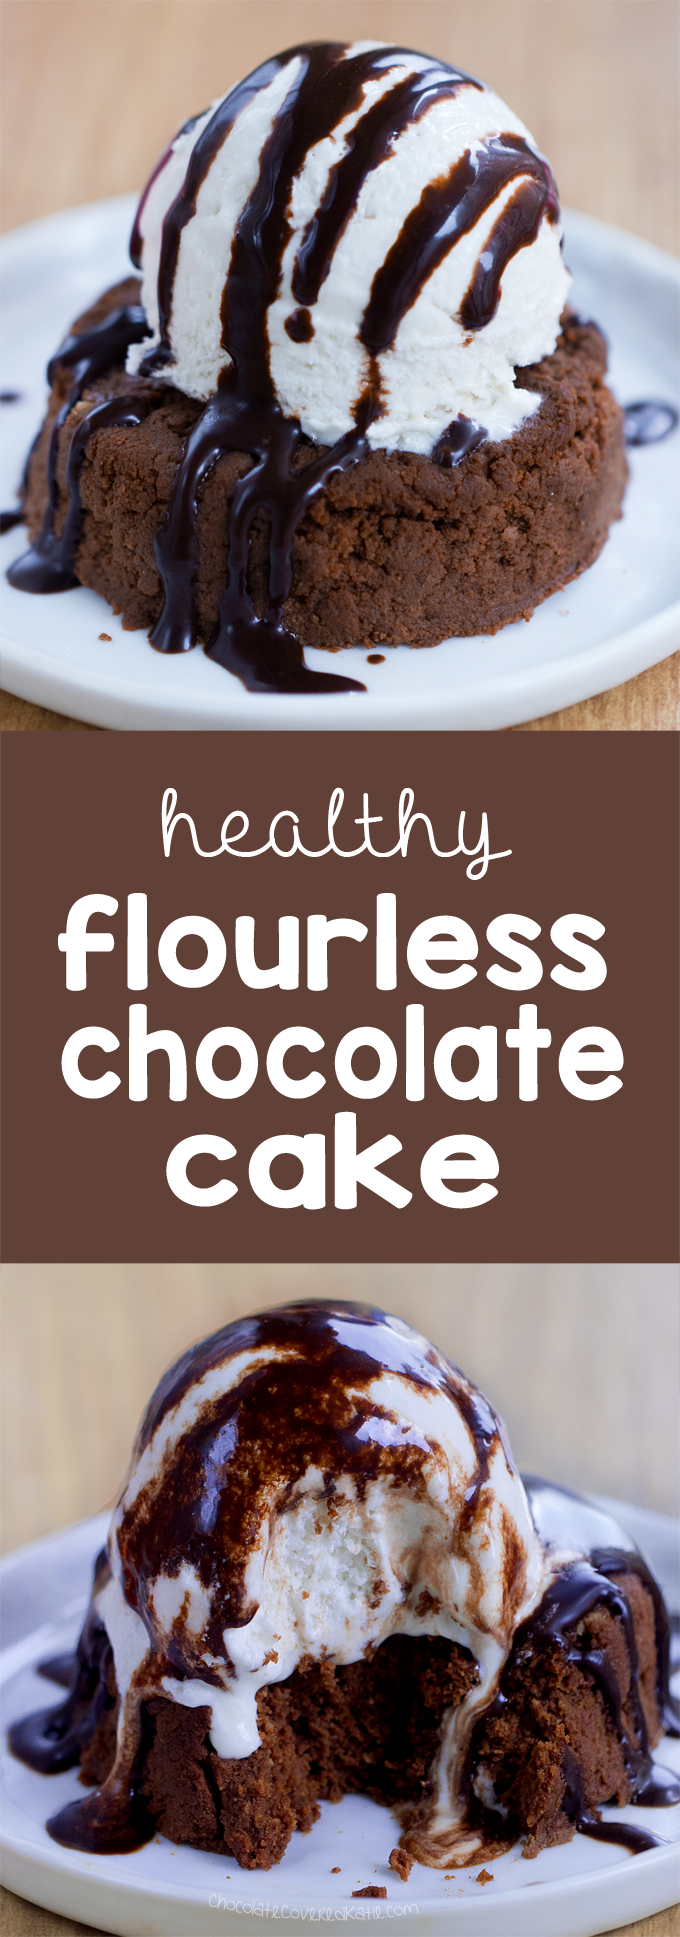 Flourless Chocolate Cake - Ingredients: 1/2 cup cocoa powder, 1/4 tsp ...